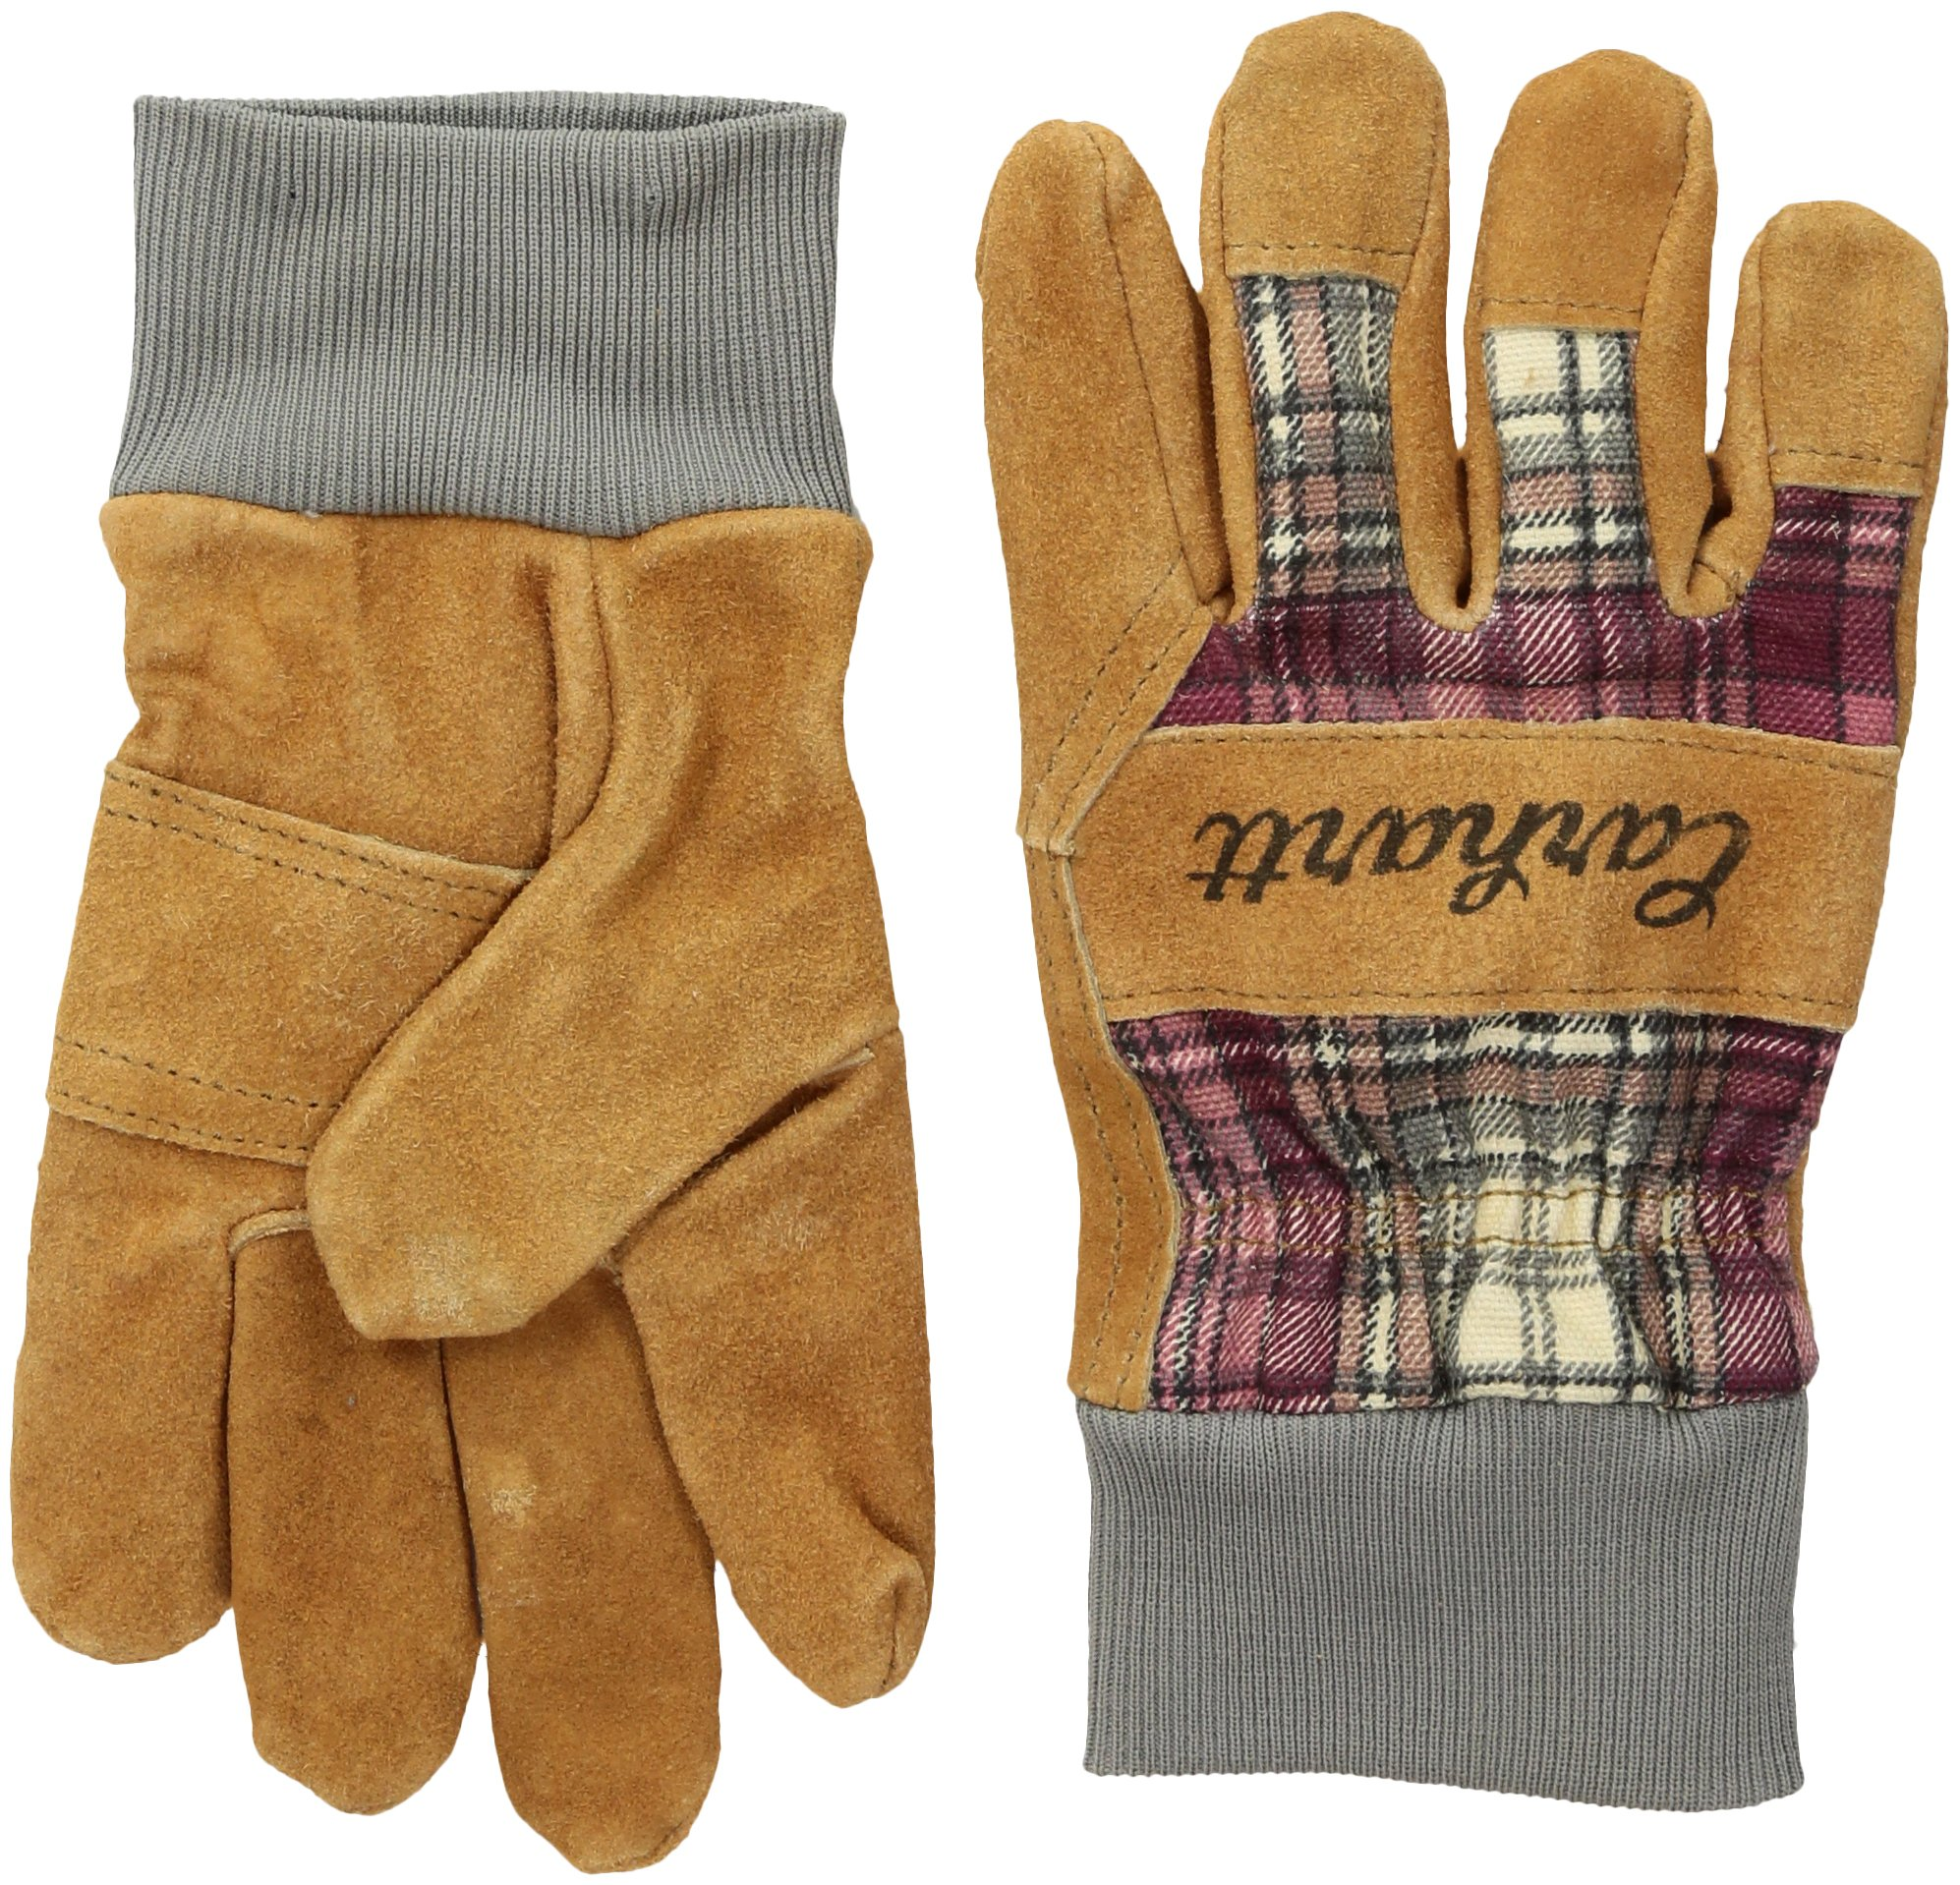 Carhartt Women's Suede Work Glove with Knit Cuff, Wild Rose Plaid, L